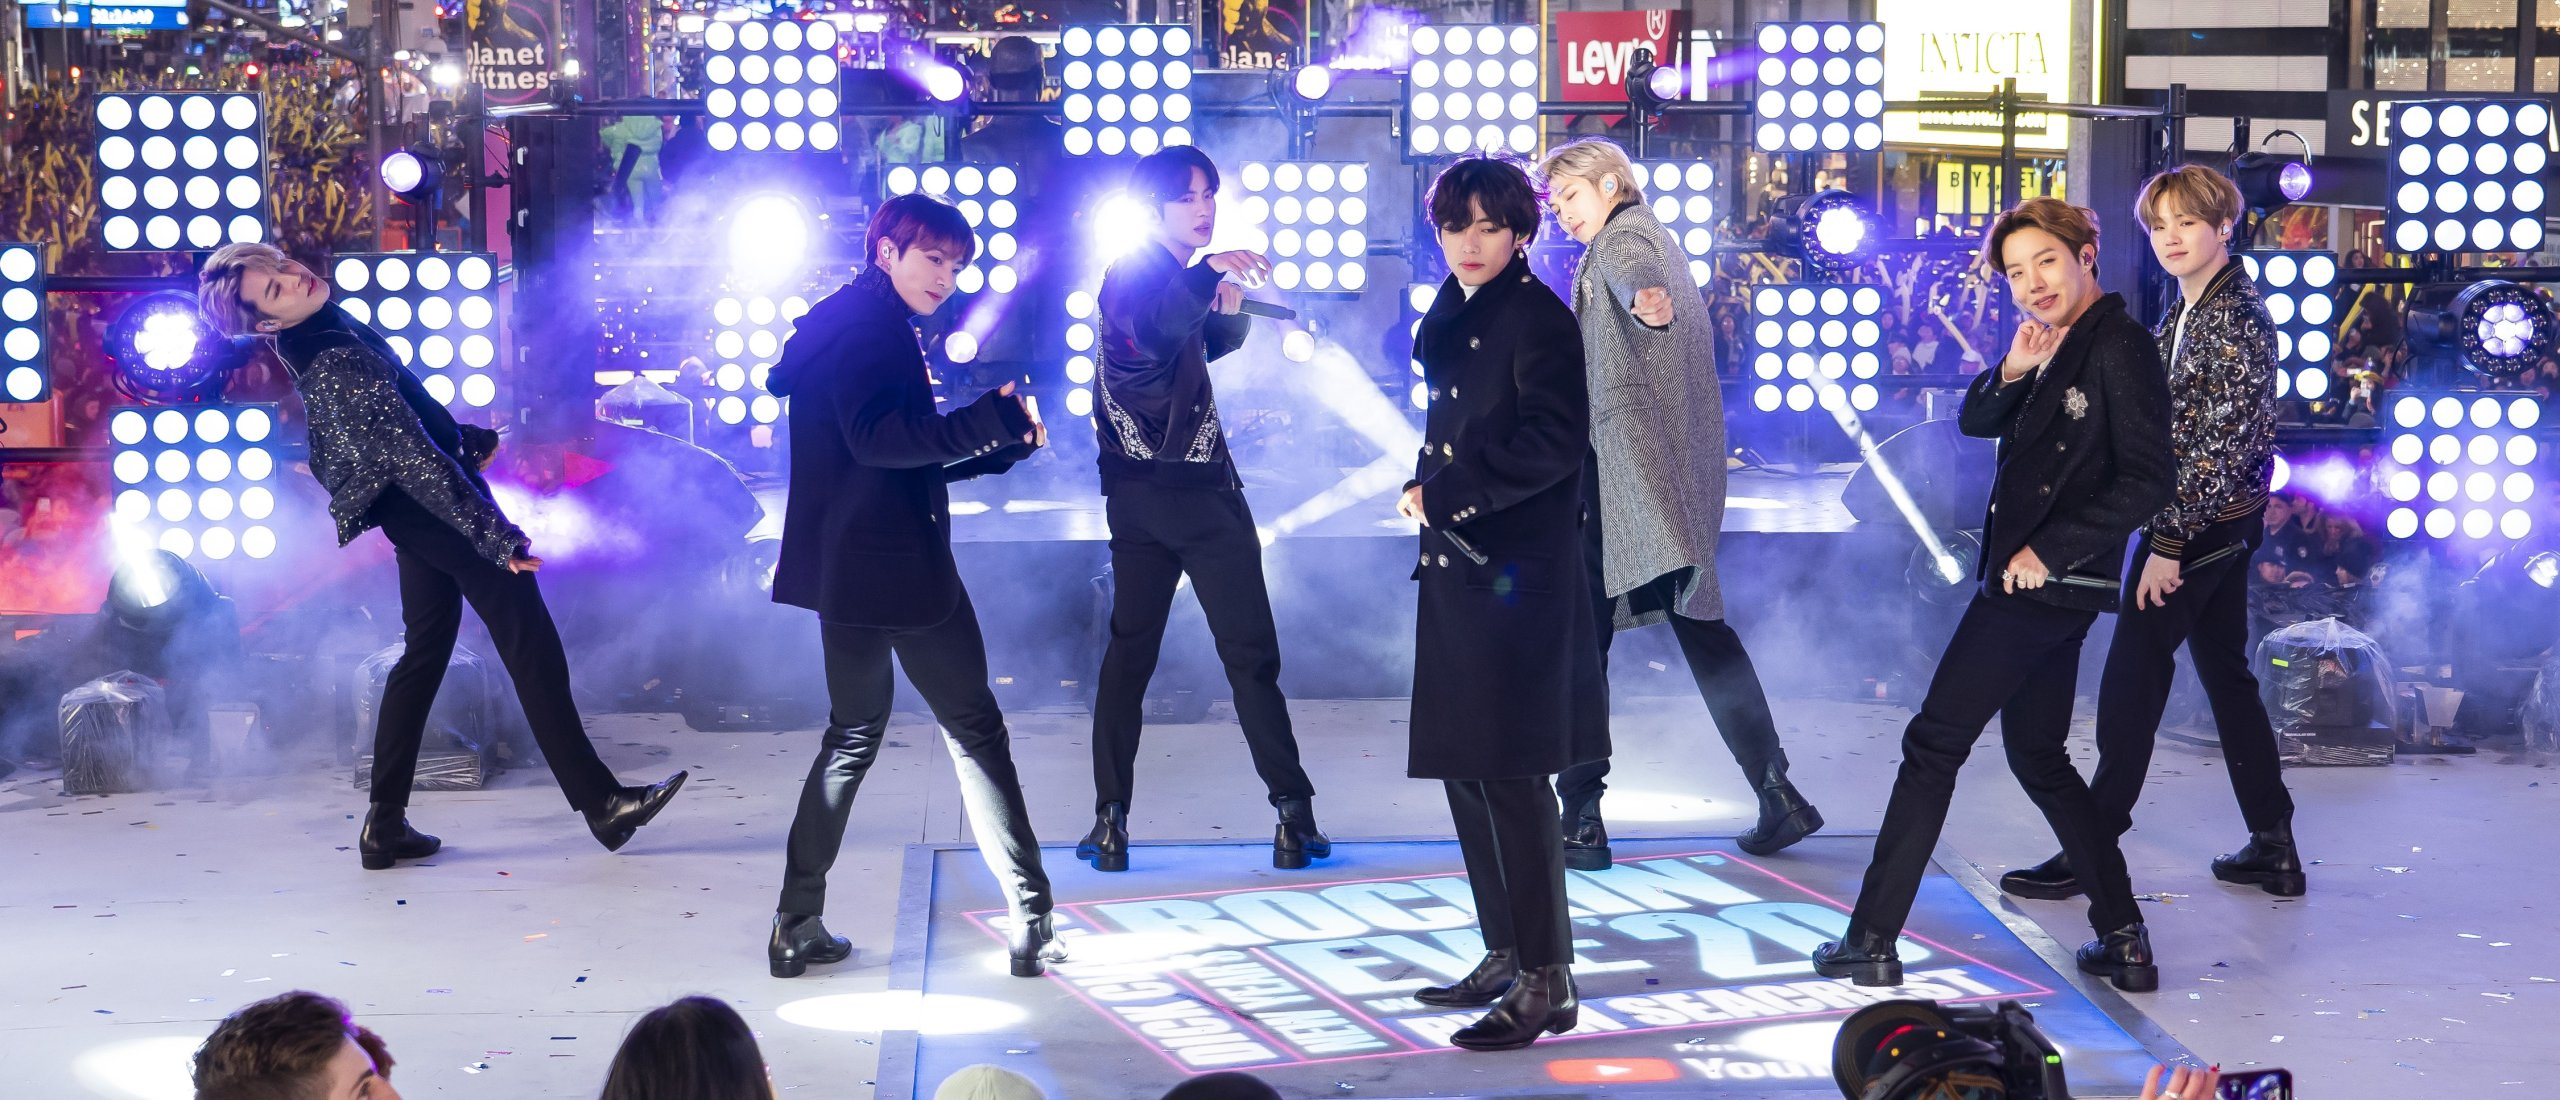 Members of BTS perform at the Times Square New Year's Eve celebration in New York City, New York, U.S., on Dec. 31, 2019. (AP PHOTO)